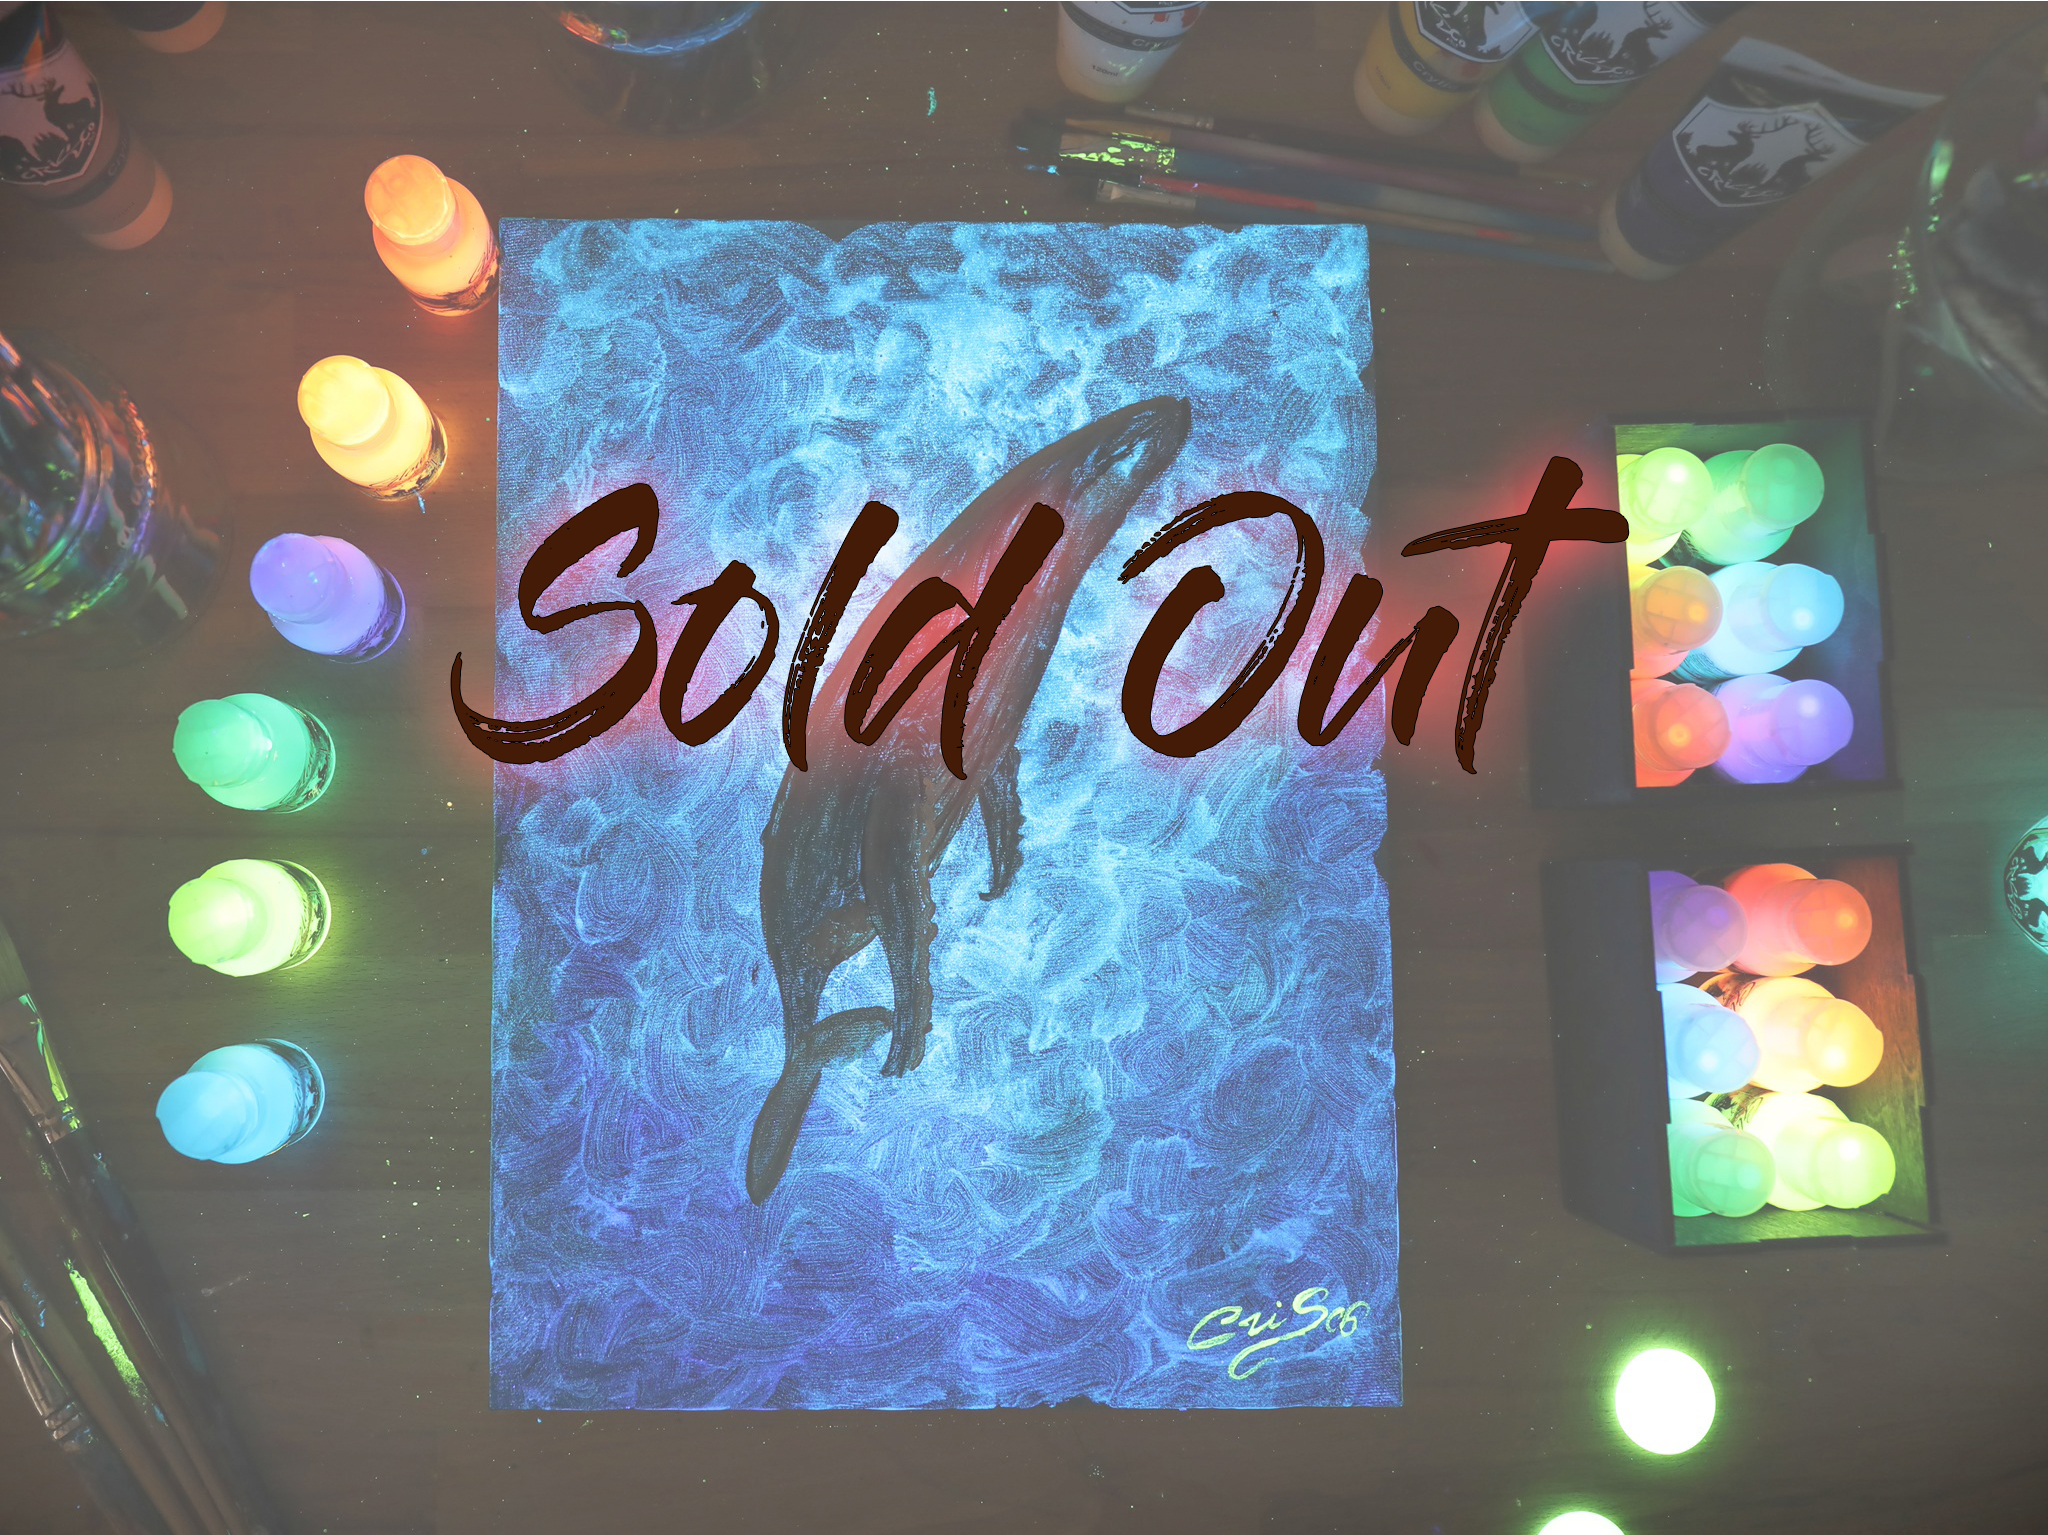 sold out filexxxxx